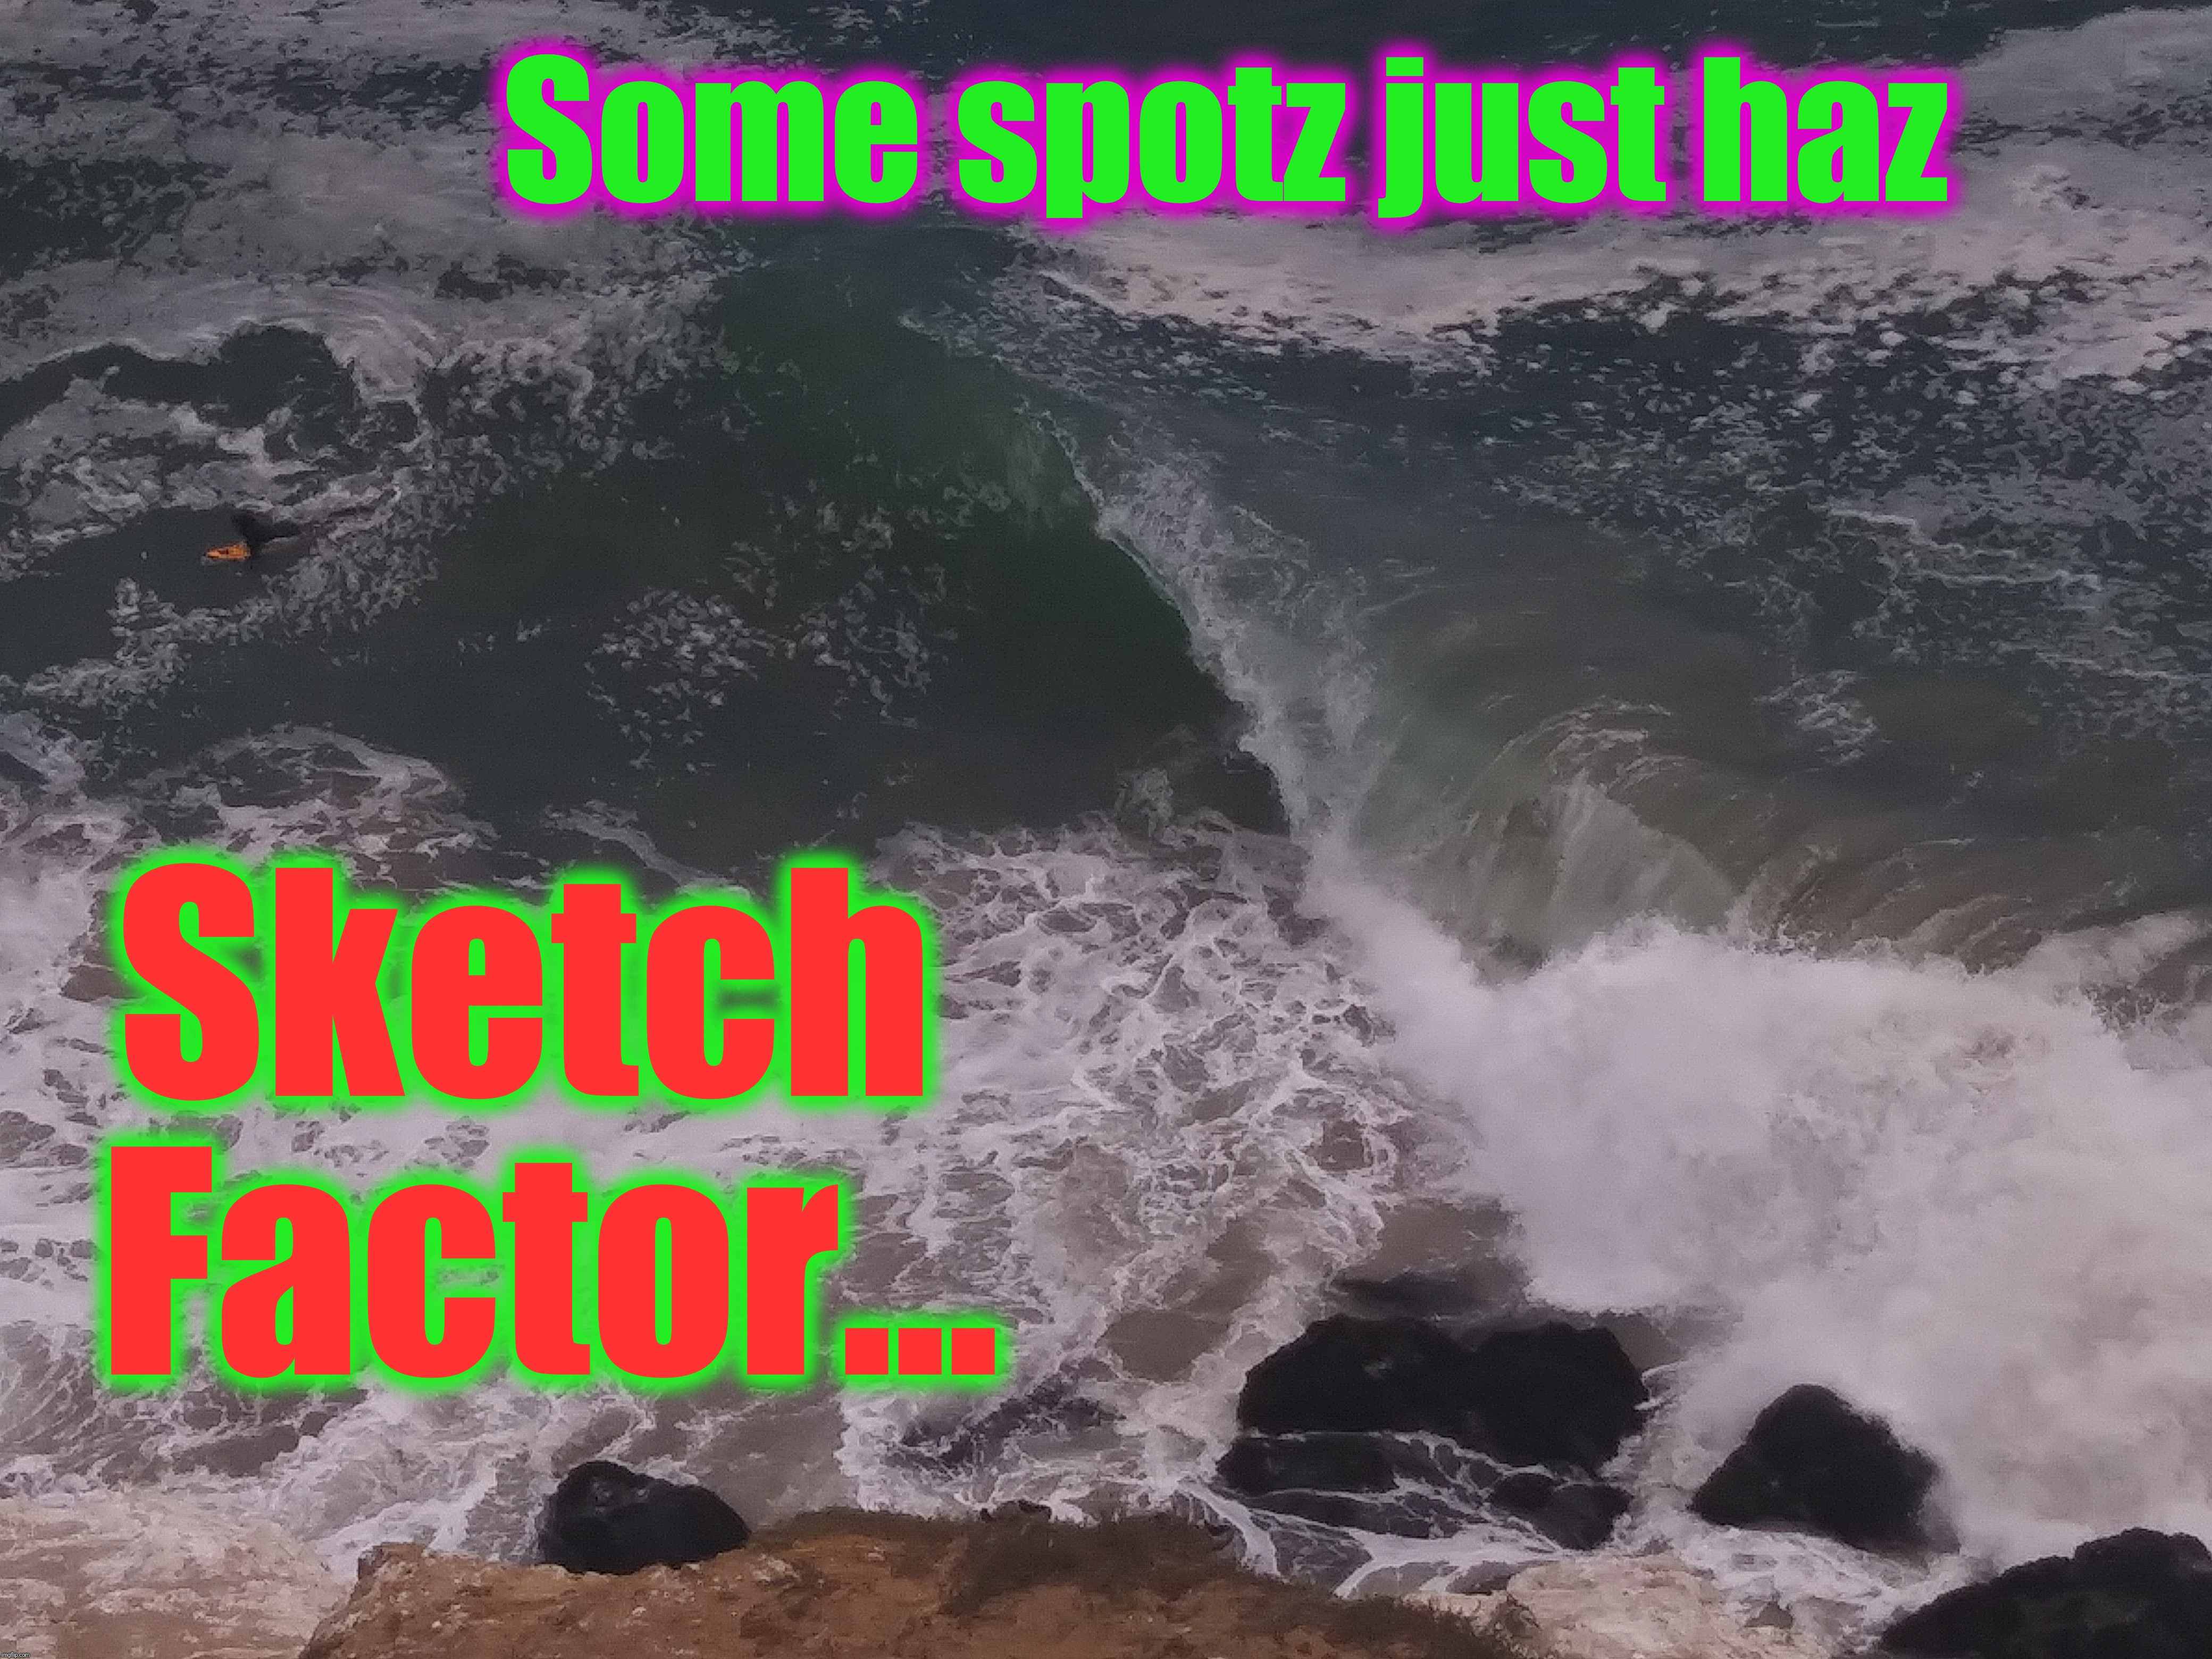 Where you're looking is where you're going... Don't look down.  | Some spotz just haz Sketch Factor... | image tagged in extreme sports,charlie don't surf,so i guess you can say things are getting pretty serious,memes,heavy,barrel racing | made w/ Imgflip meme maker